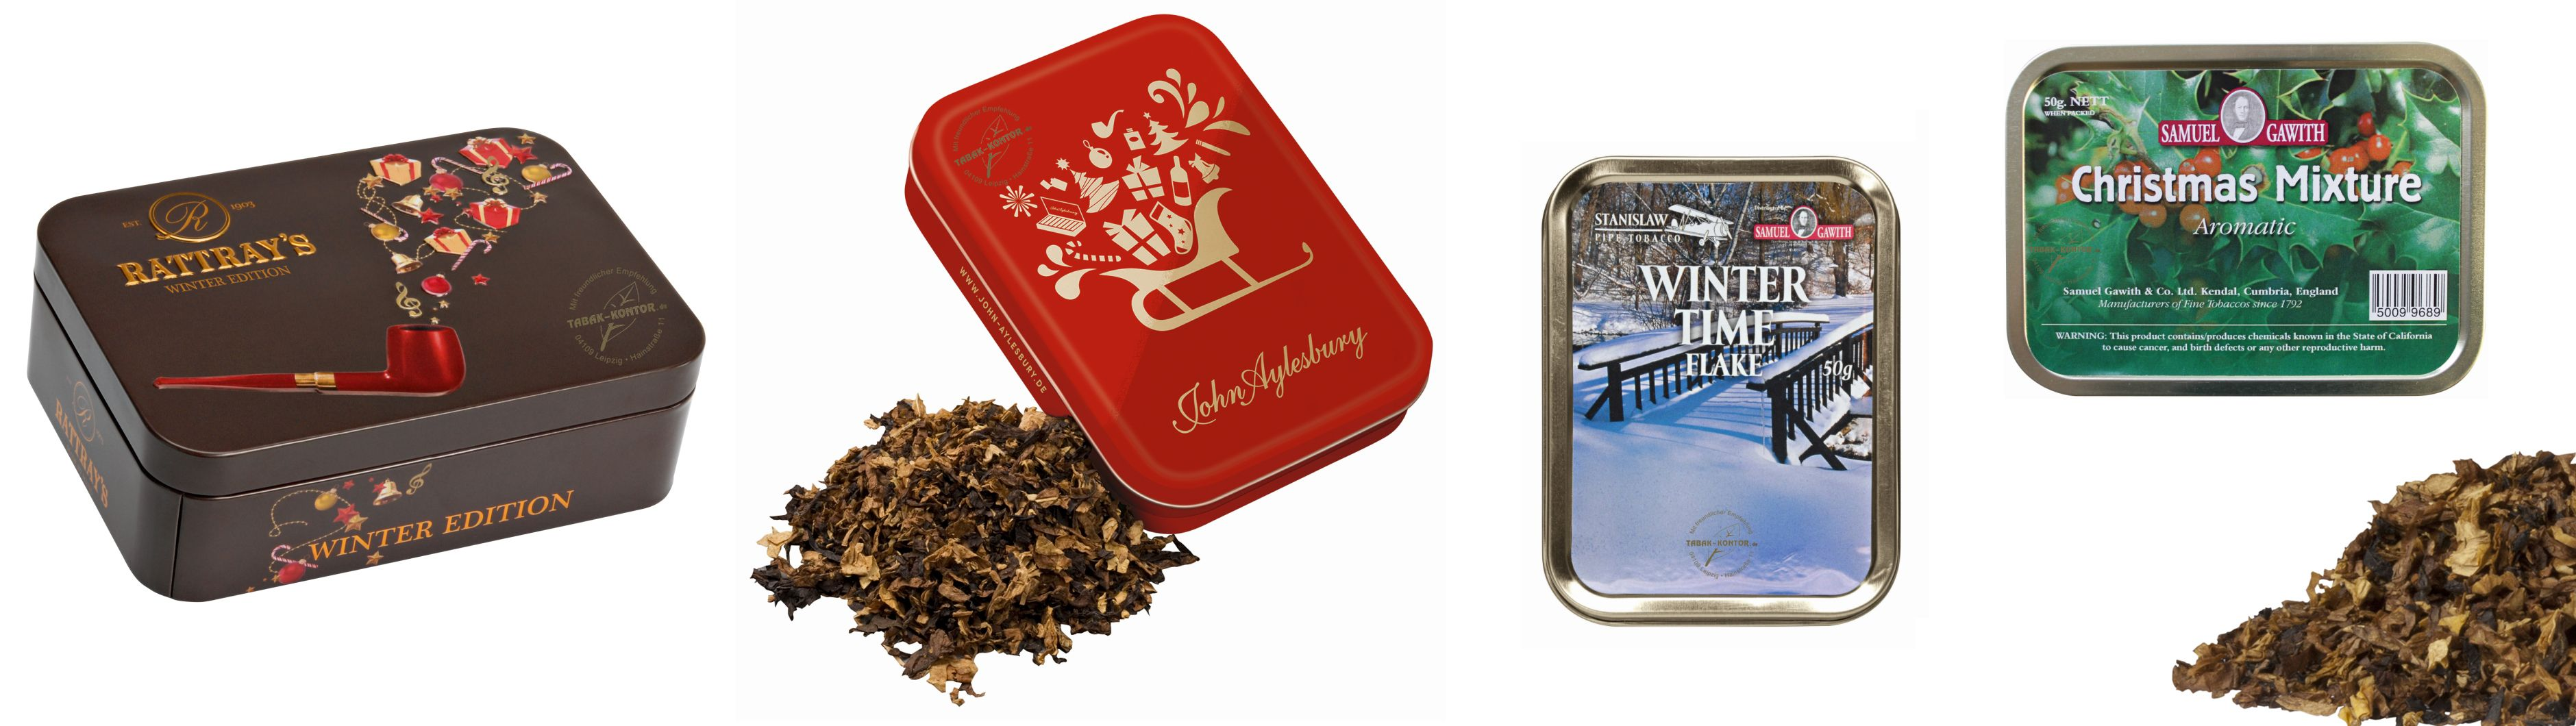 Rattray's Winter Edition 2014 | John Aylesbury Wintertabak 2014/2015 | Samuel Gawith Winter Time Flake | Samuel Gawith Christmas Mixture